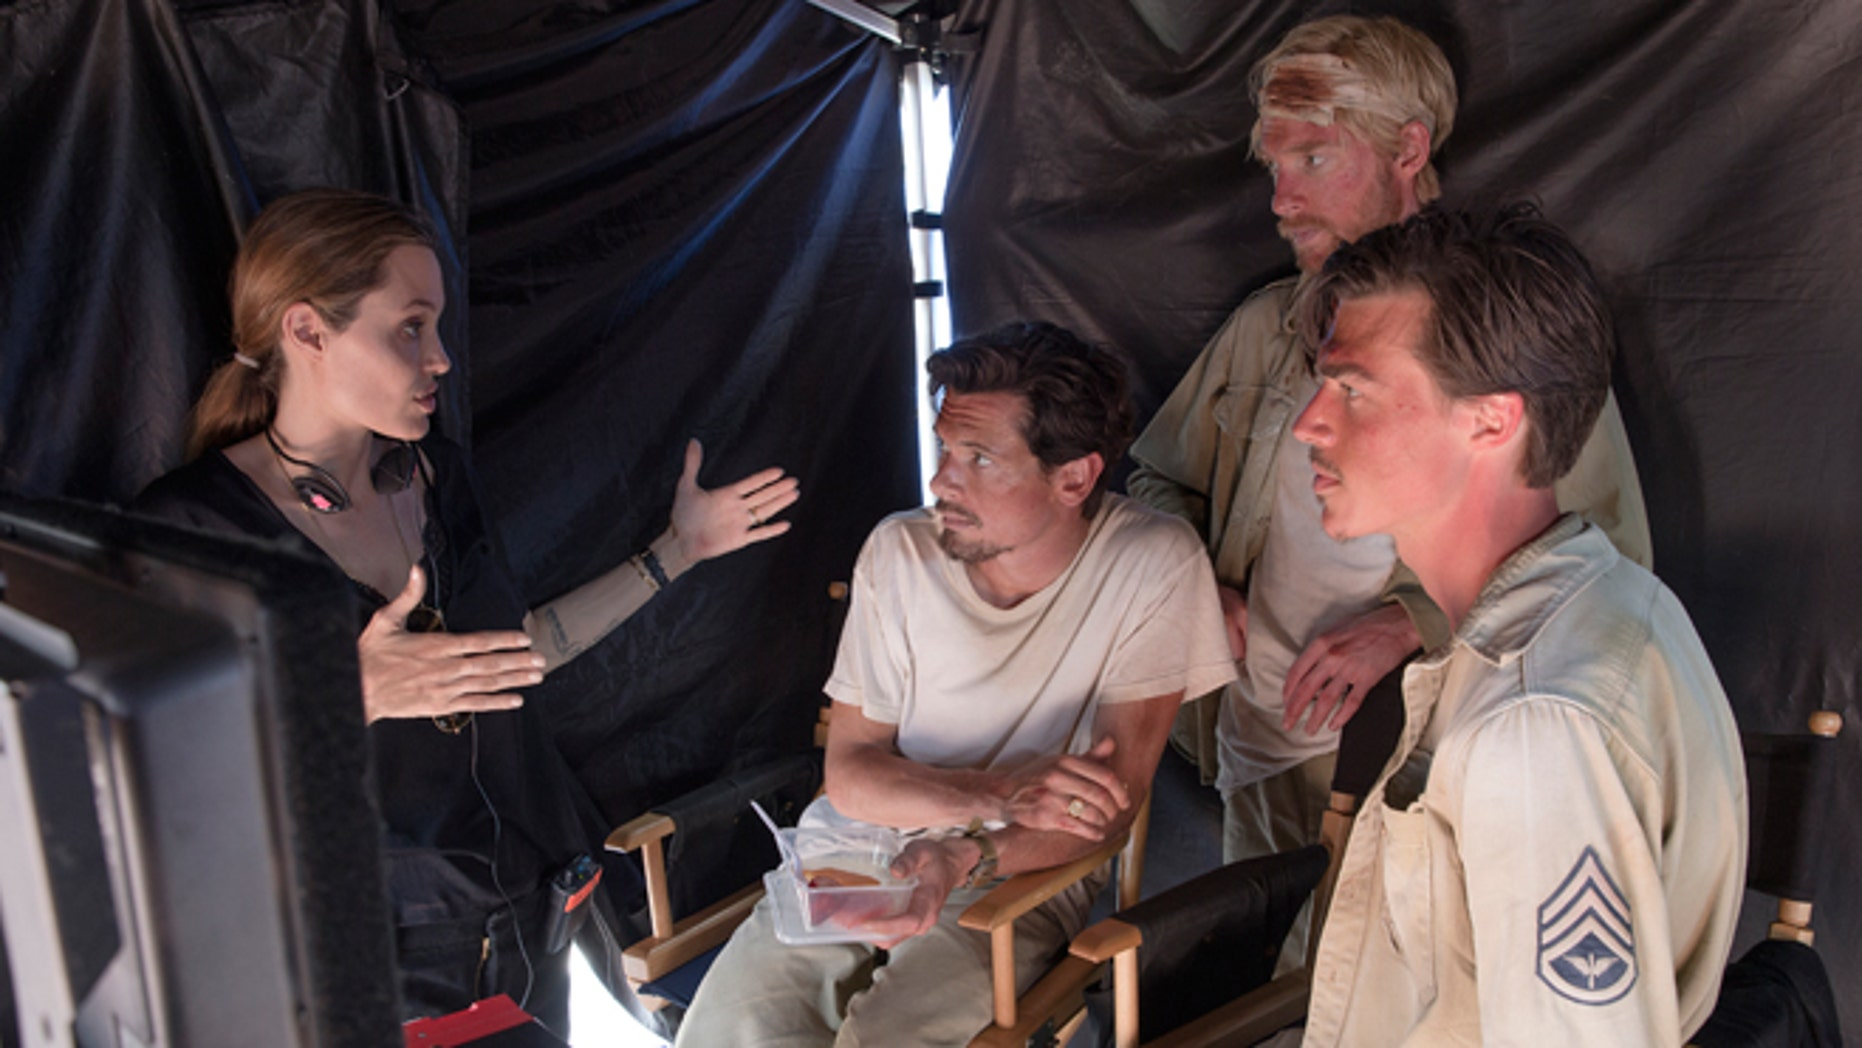 """In this image released by Universal Pictures, director Angelina Jolie, from left, speaks with actors Jack O'Connell, Domhnall Gleeson and Finn Witrock on the set of """"Unbroken."""""""